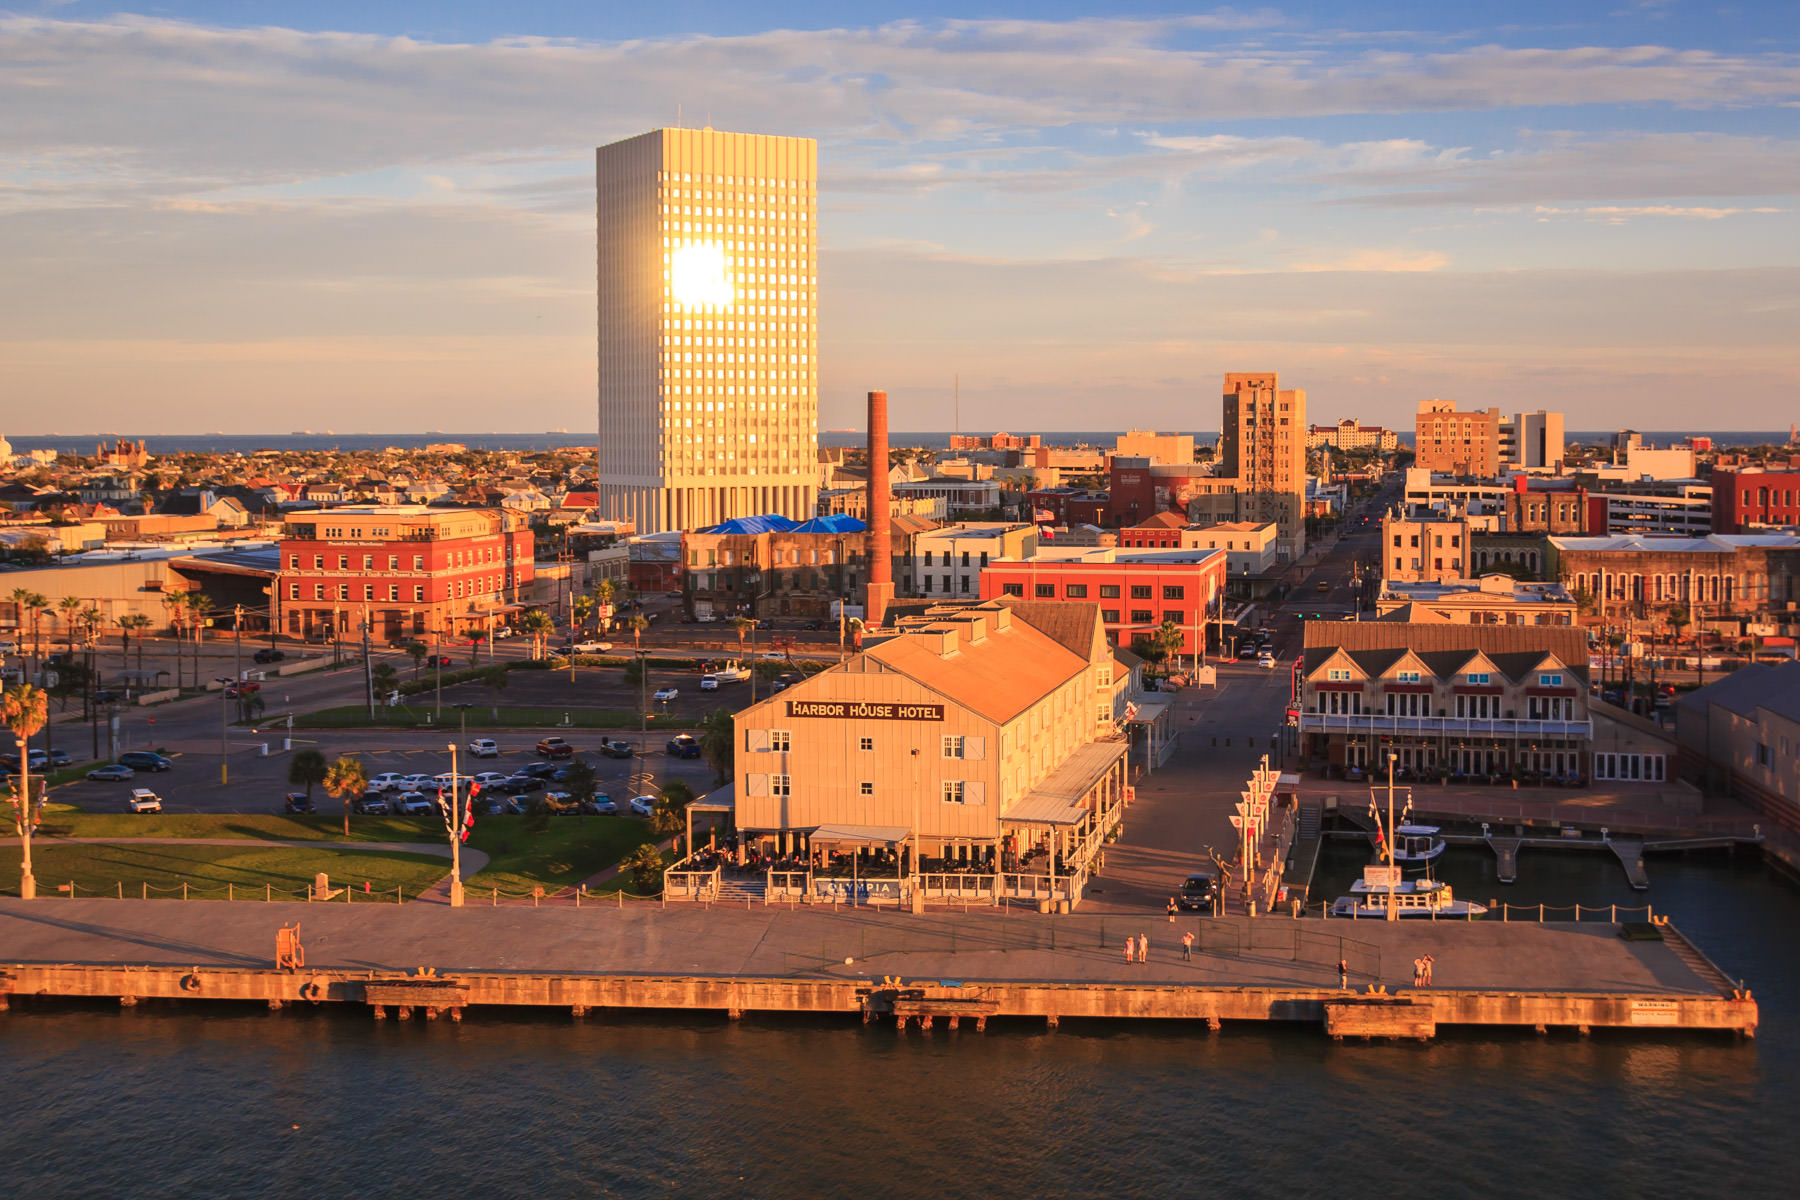 The sun sets on the 1.5-mile-wide strip of land that is Galveston Island, Texas.